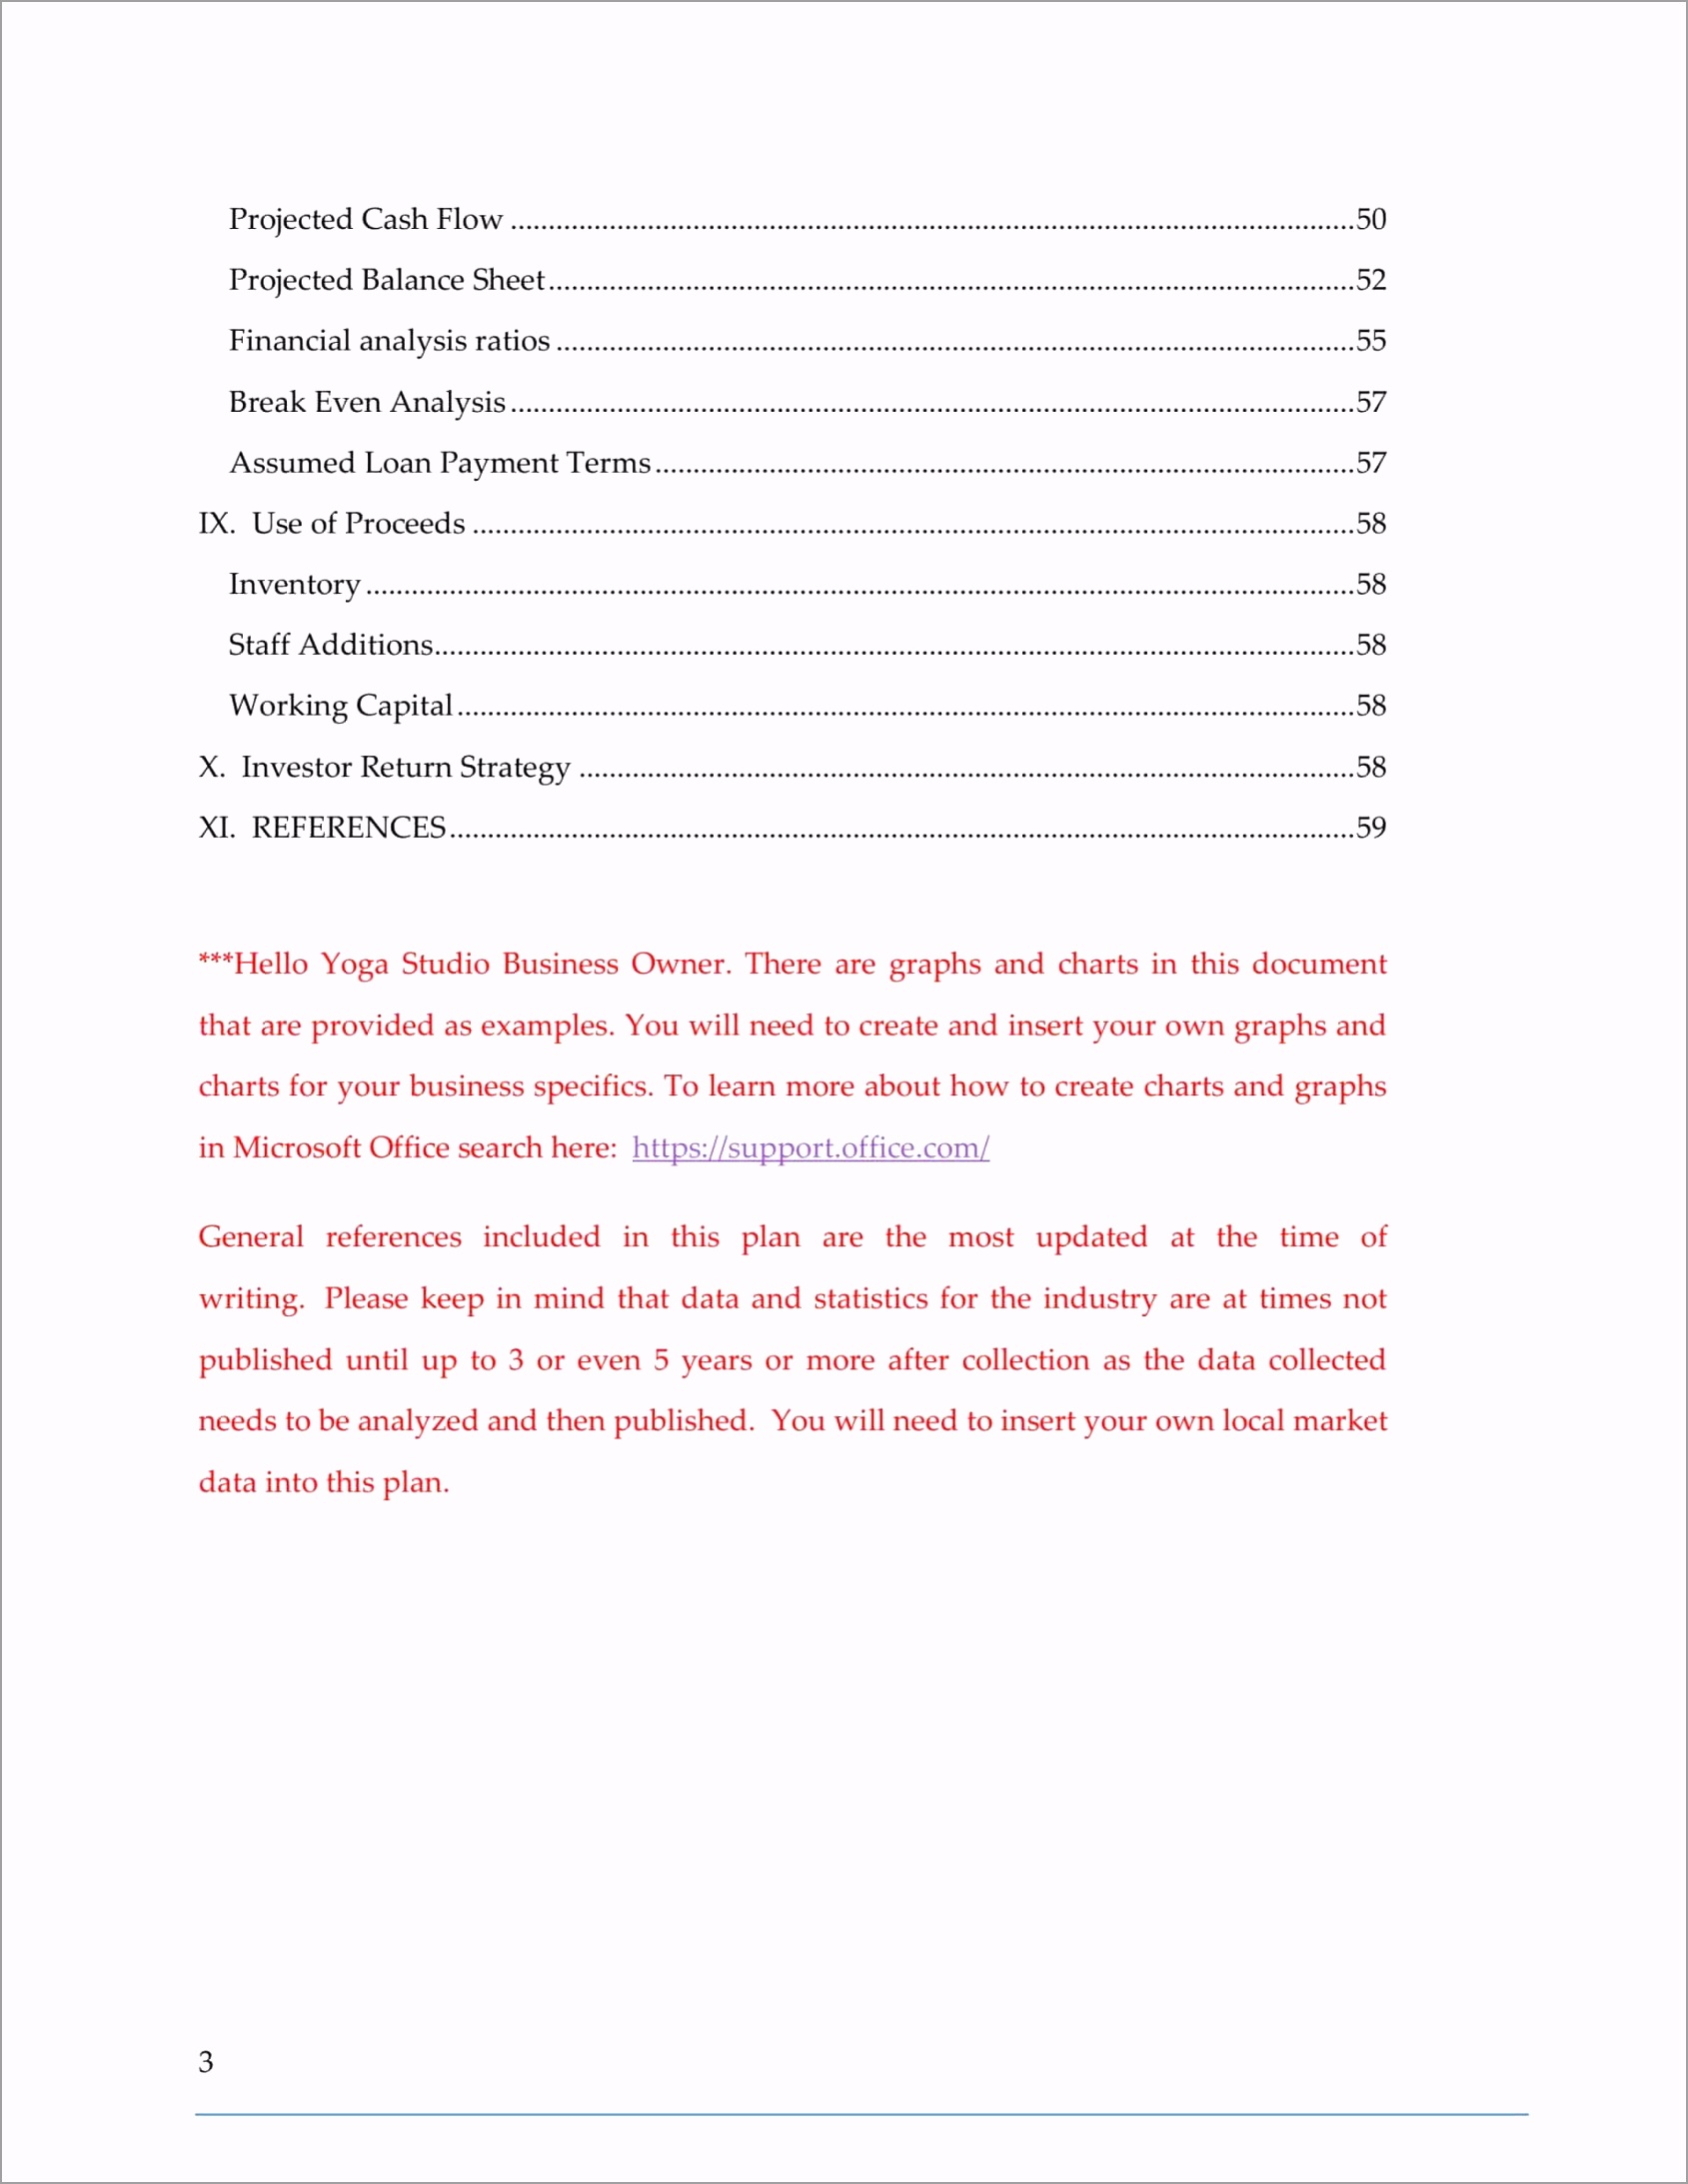 table of contents page 3 YOGA Business Plan Template iysit